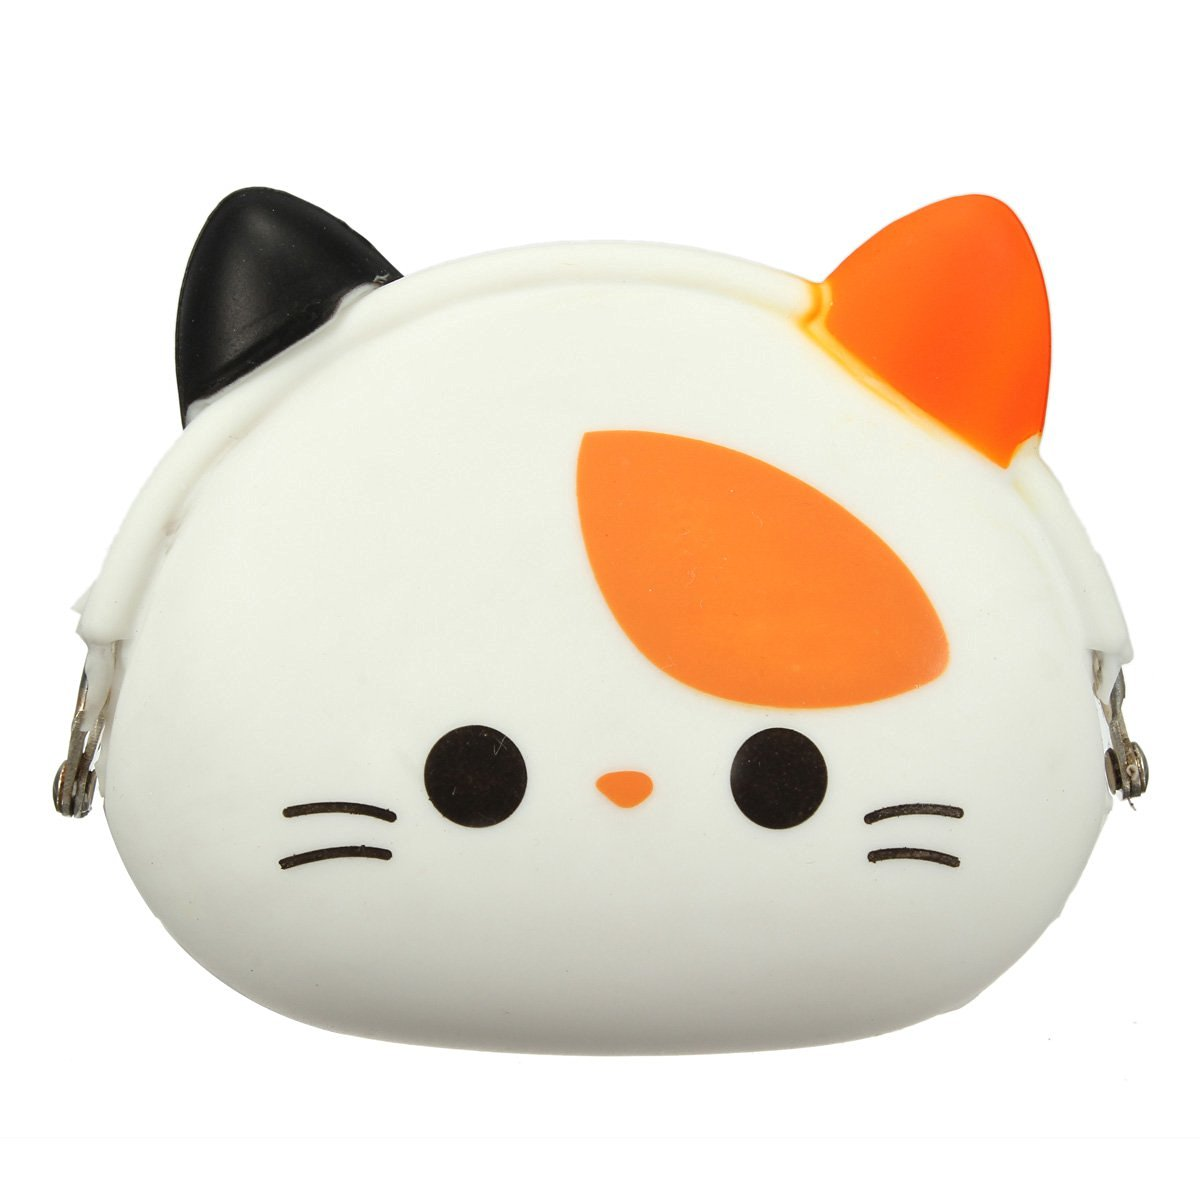 FGGS-Women Girls Wallet Kawaii Cute Cartoon Animal Silicone Jelly Coin Bag Purse Kids Gift Small Cat fggs 13 colors lovely girls wallet candy color kawaii cute cartoon animal multicolor silicone jelly coin bag purse kids gift